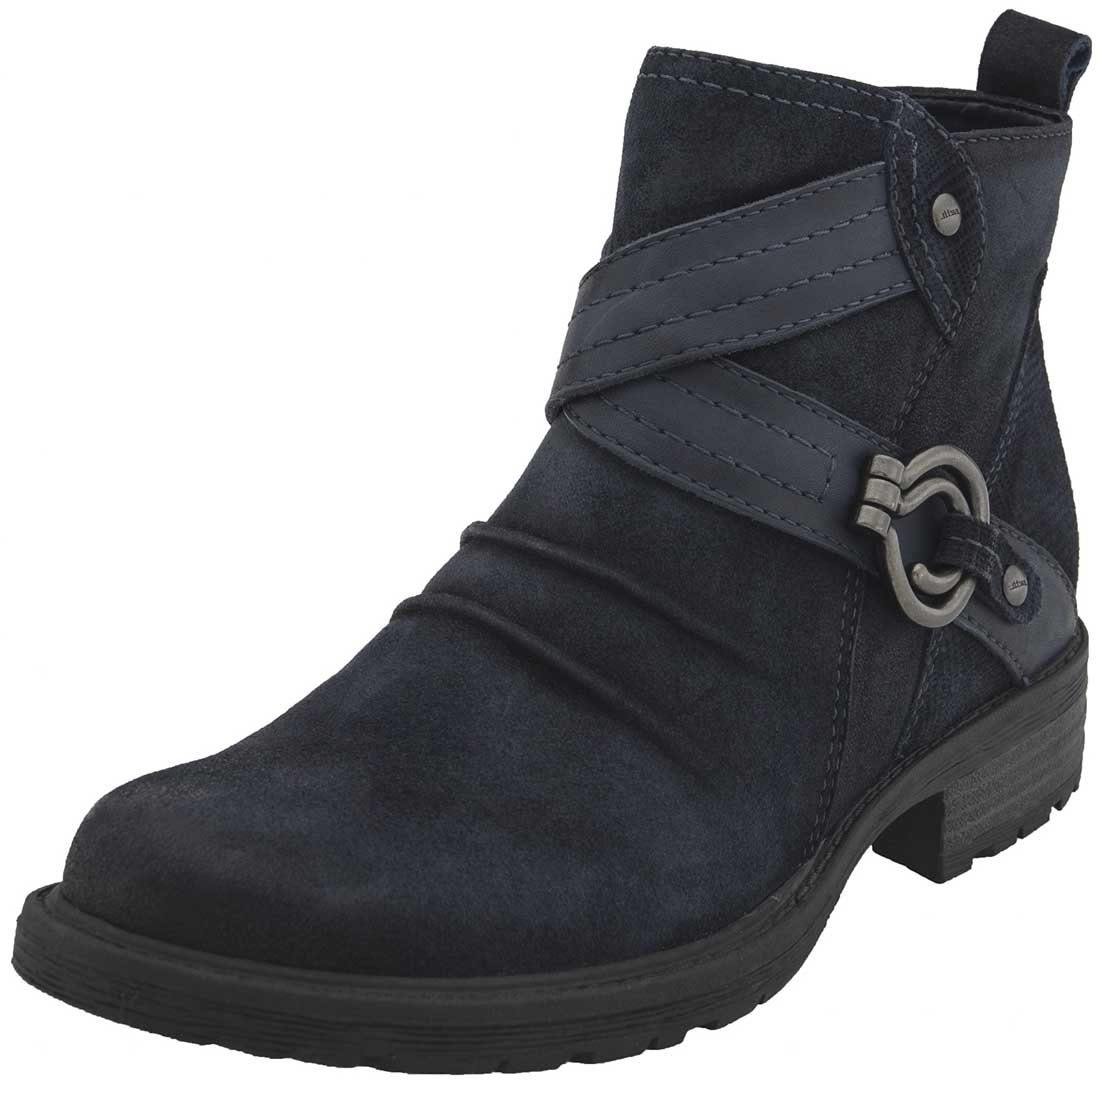 Earth Womens Laurel Leather Almond Toe Ankle Combat Boots B06WGQD7XY 5.5 B(M) US|Navy Suede